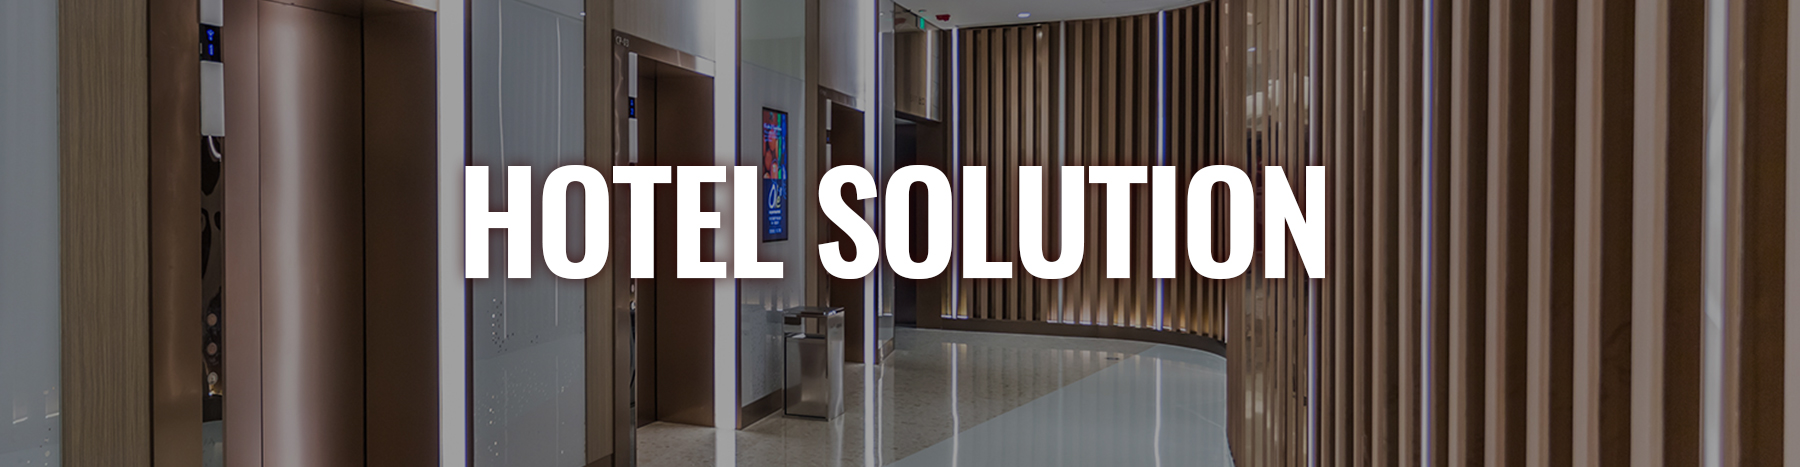 Hotel Solution